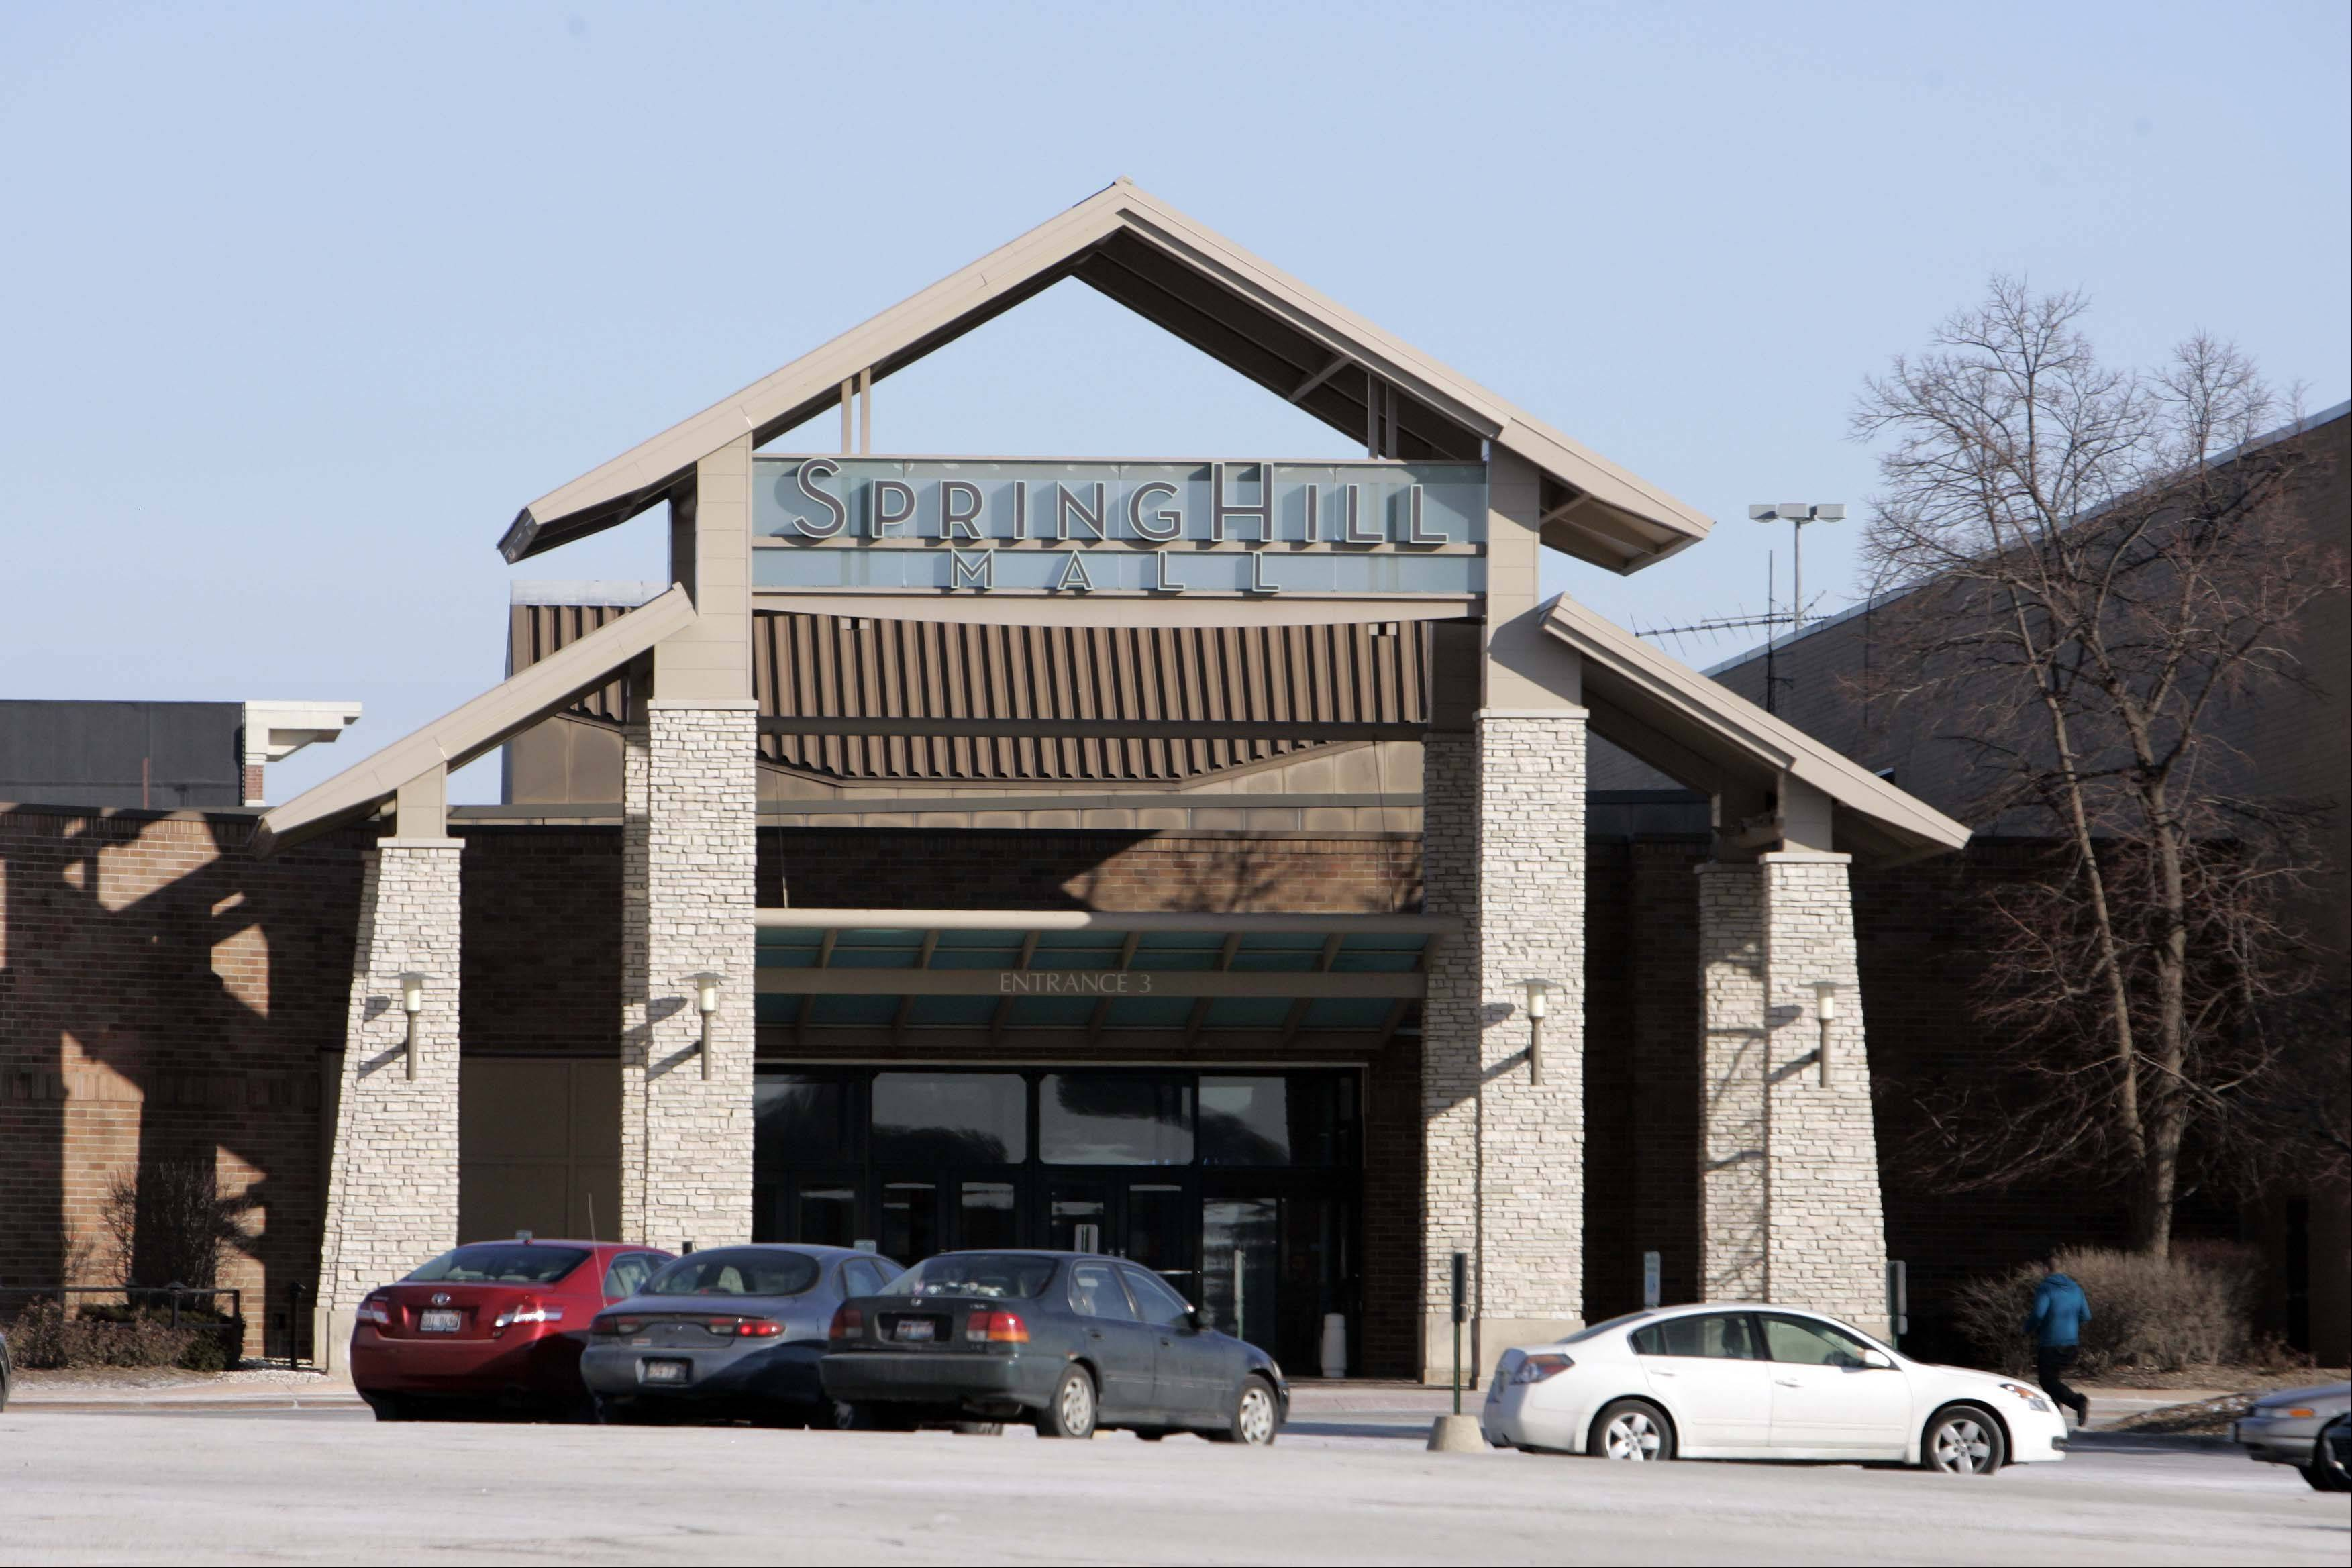 The West Dundee village board will conduct its Monday meeting at Spring Hill Mall as part of an initiative to get to know their neighbors and residents. During the meeting, the mall�s general manager is expected to announce recent mall improvements.